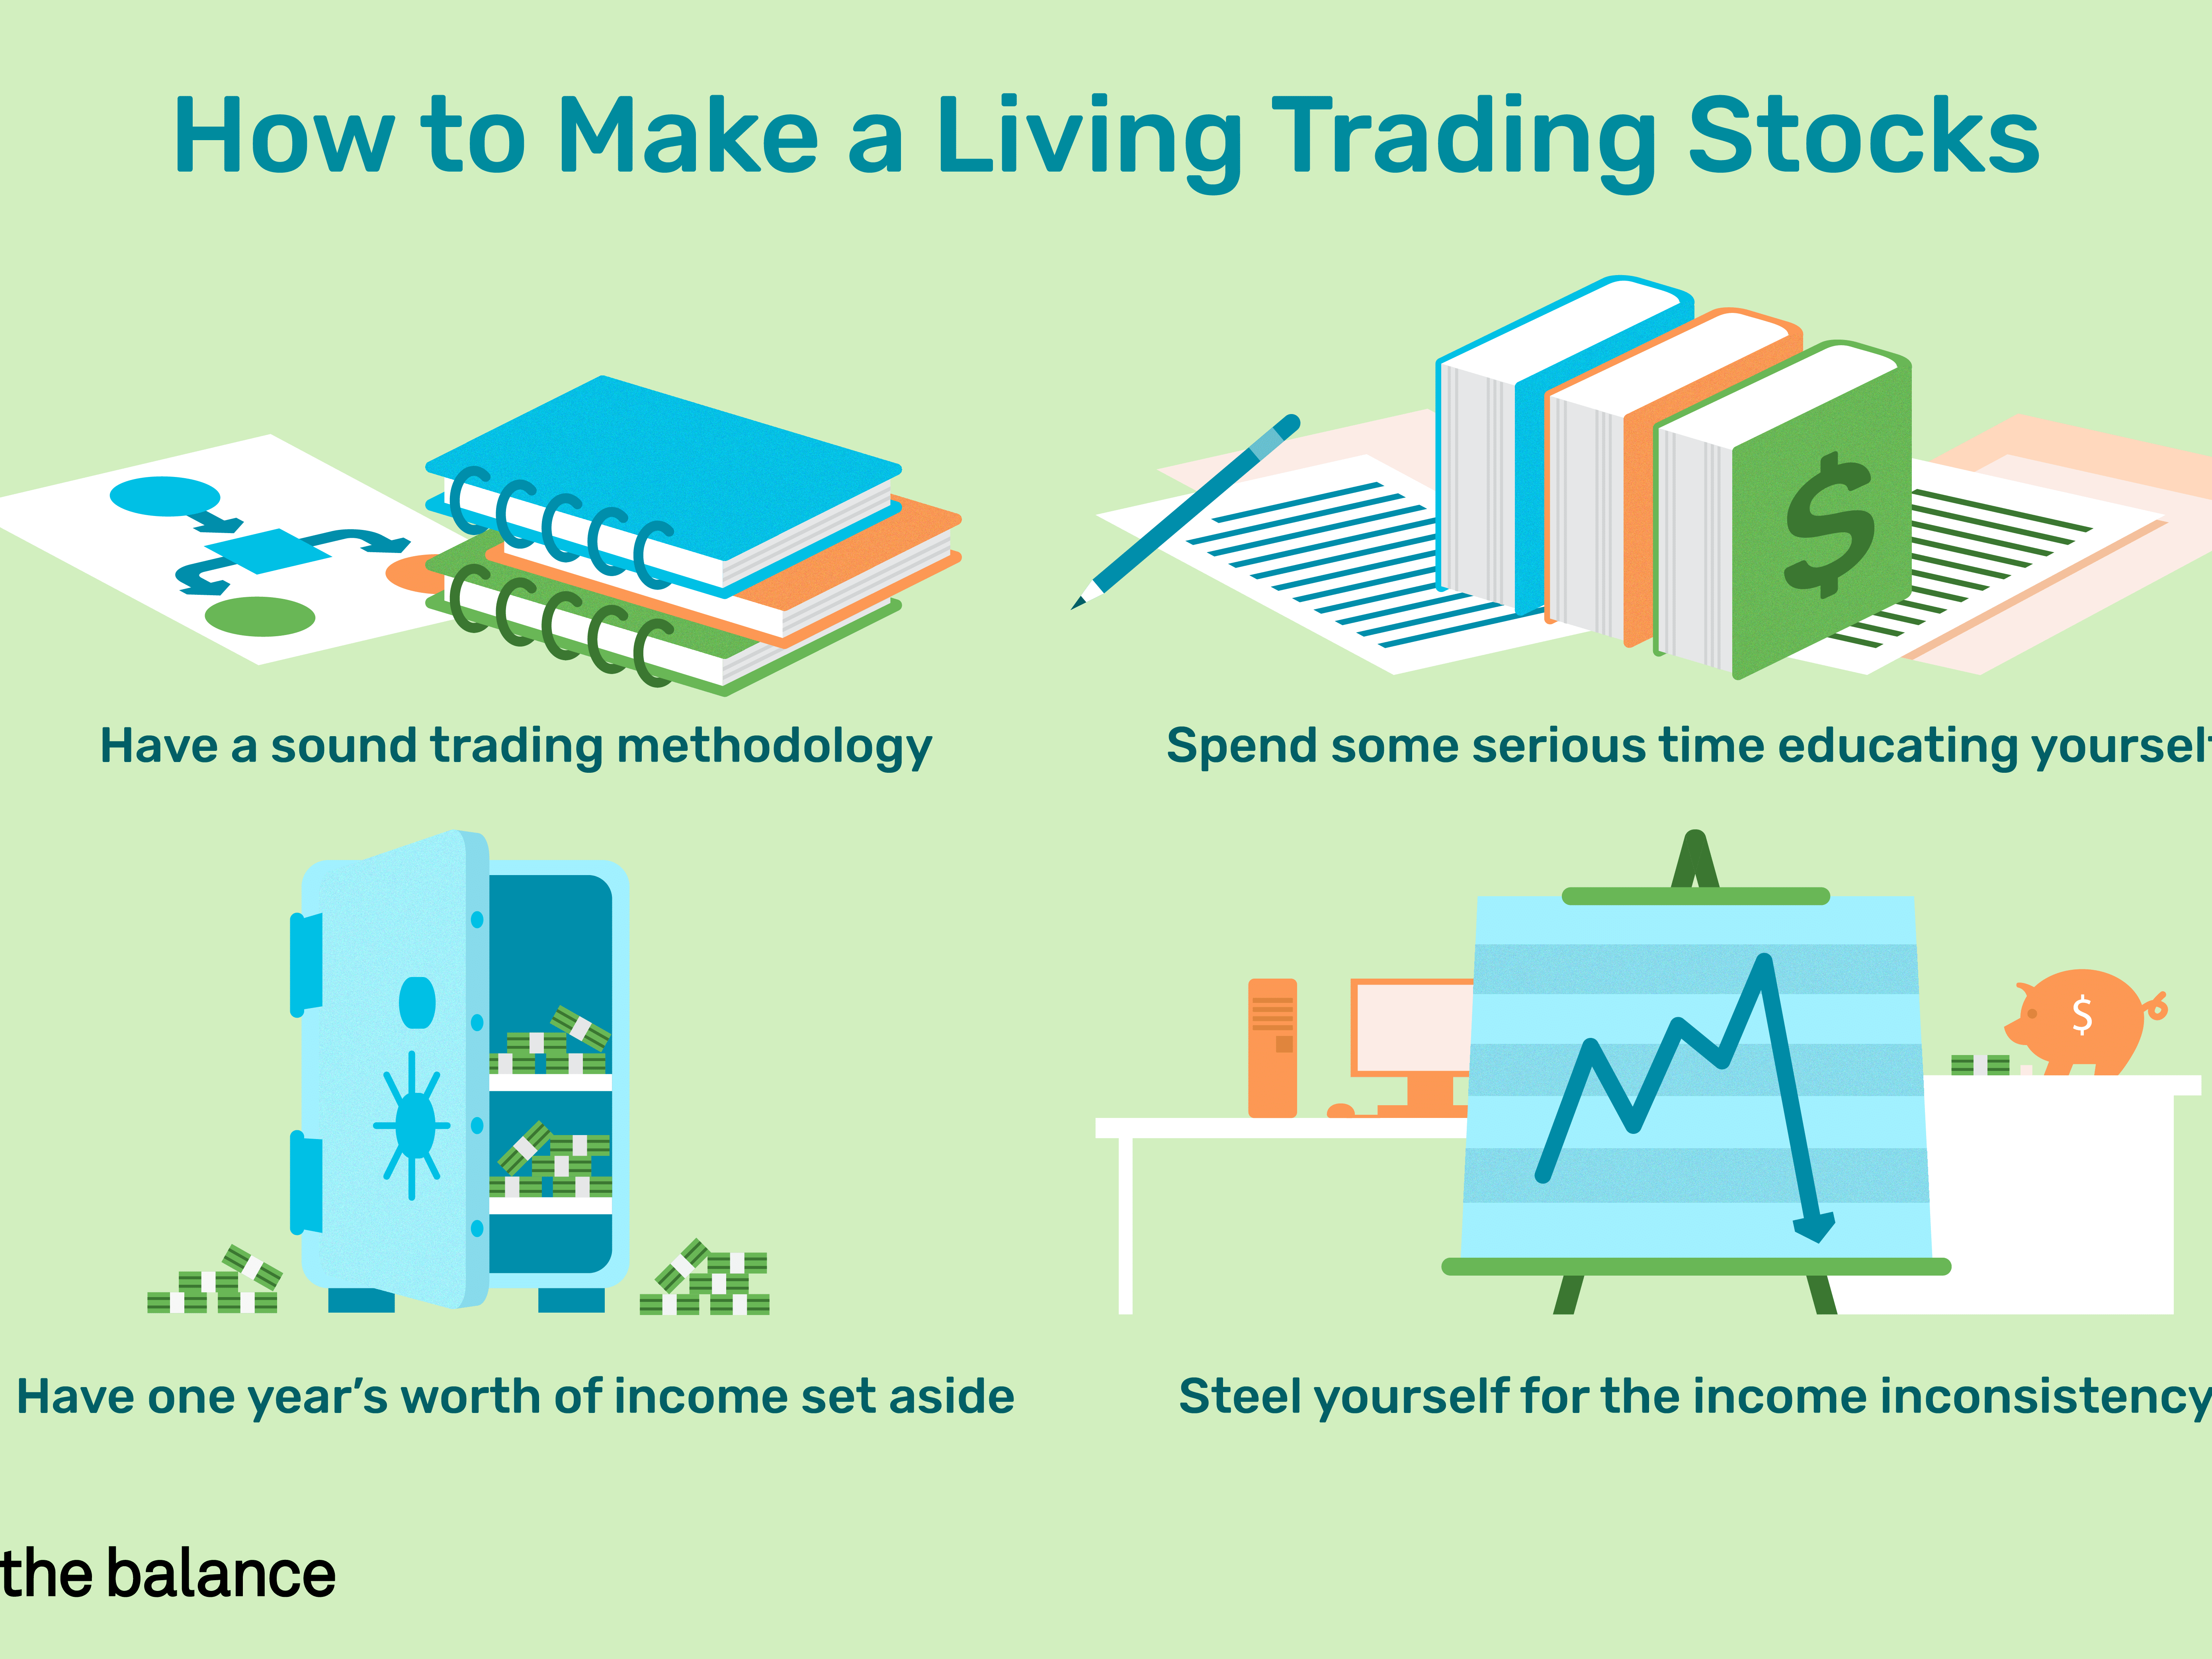 Is It Possible to Make a Living Trading Stocks?